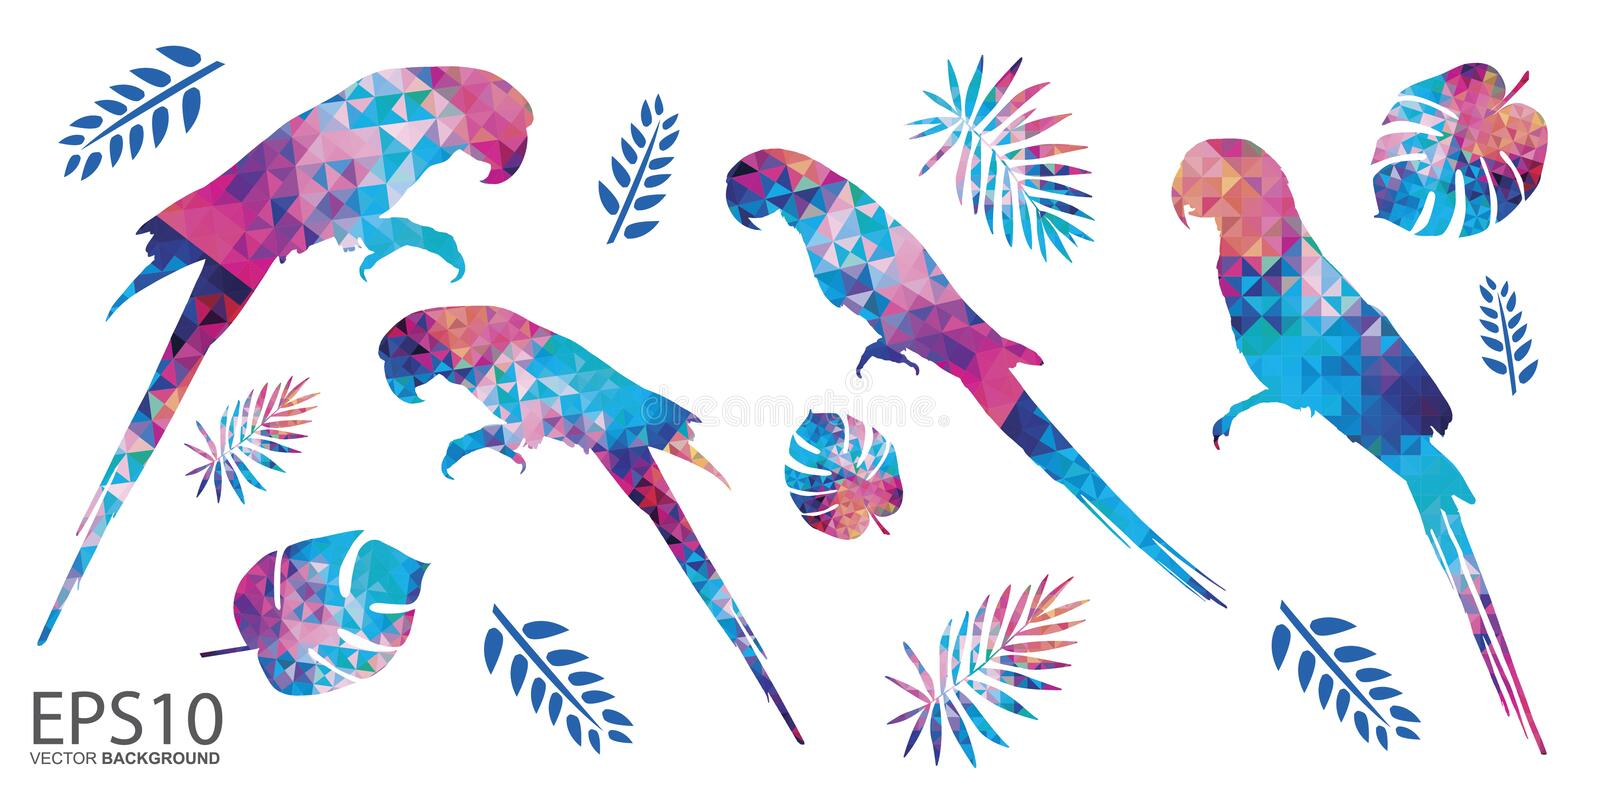 Colorful Macaw bird and tropical leaf pattern background vector illustration